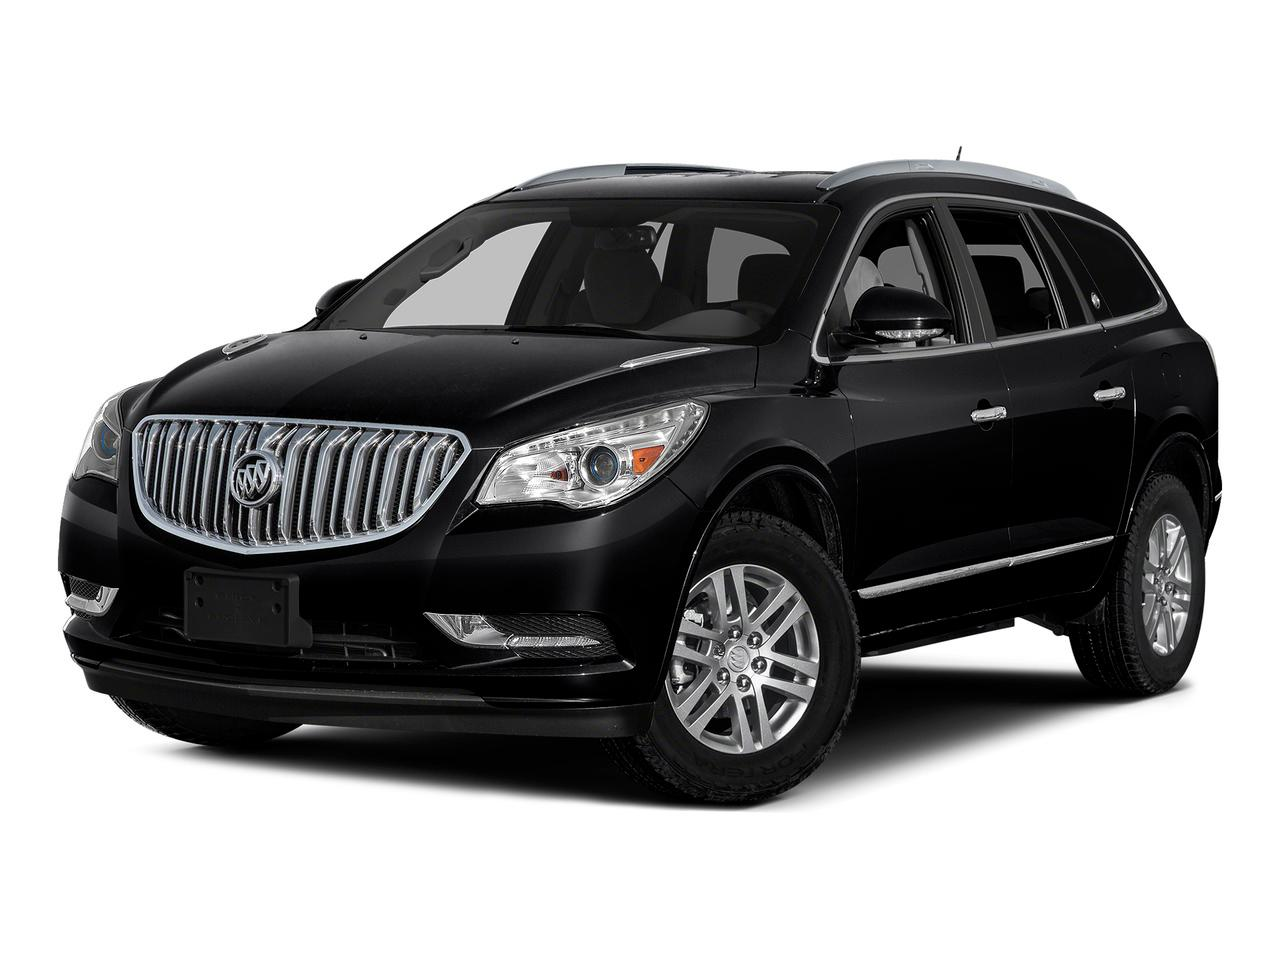 2016 Buick Enclave Vehicle Photo in Corpus Christi, TX 78410-4506